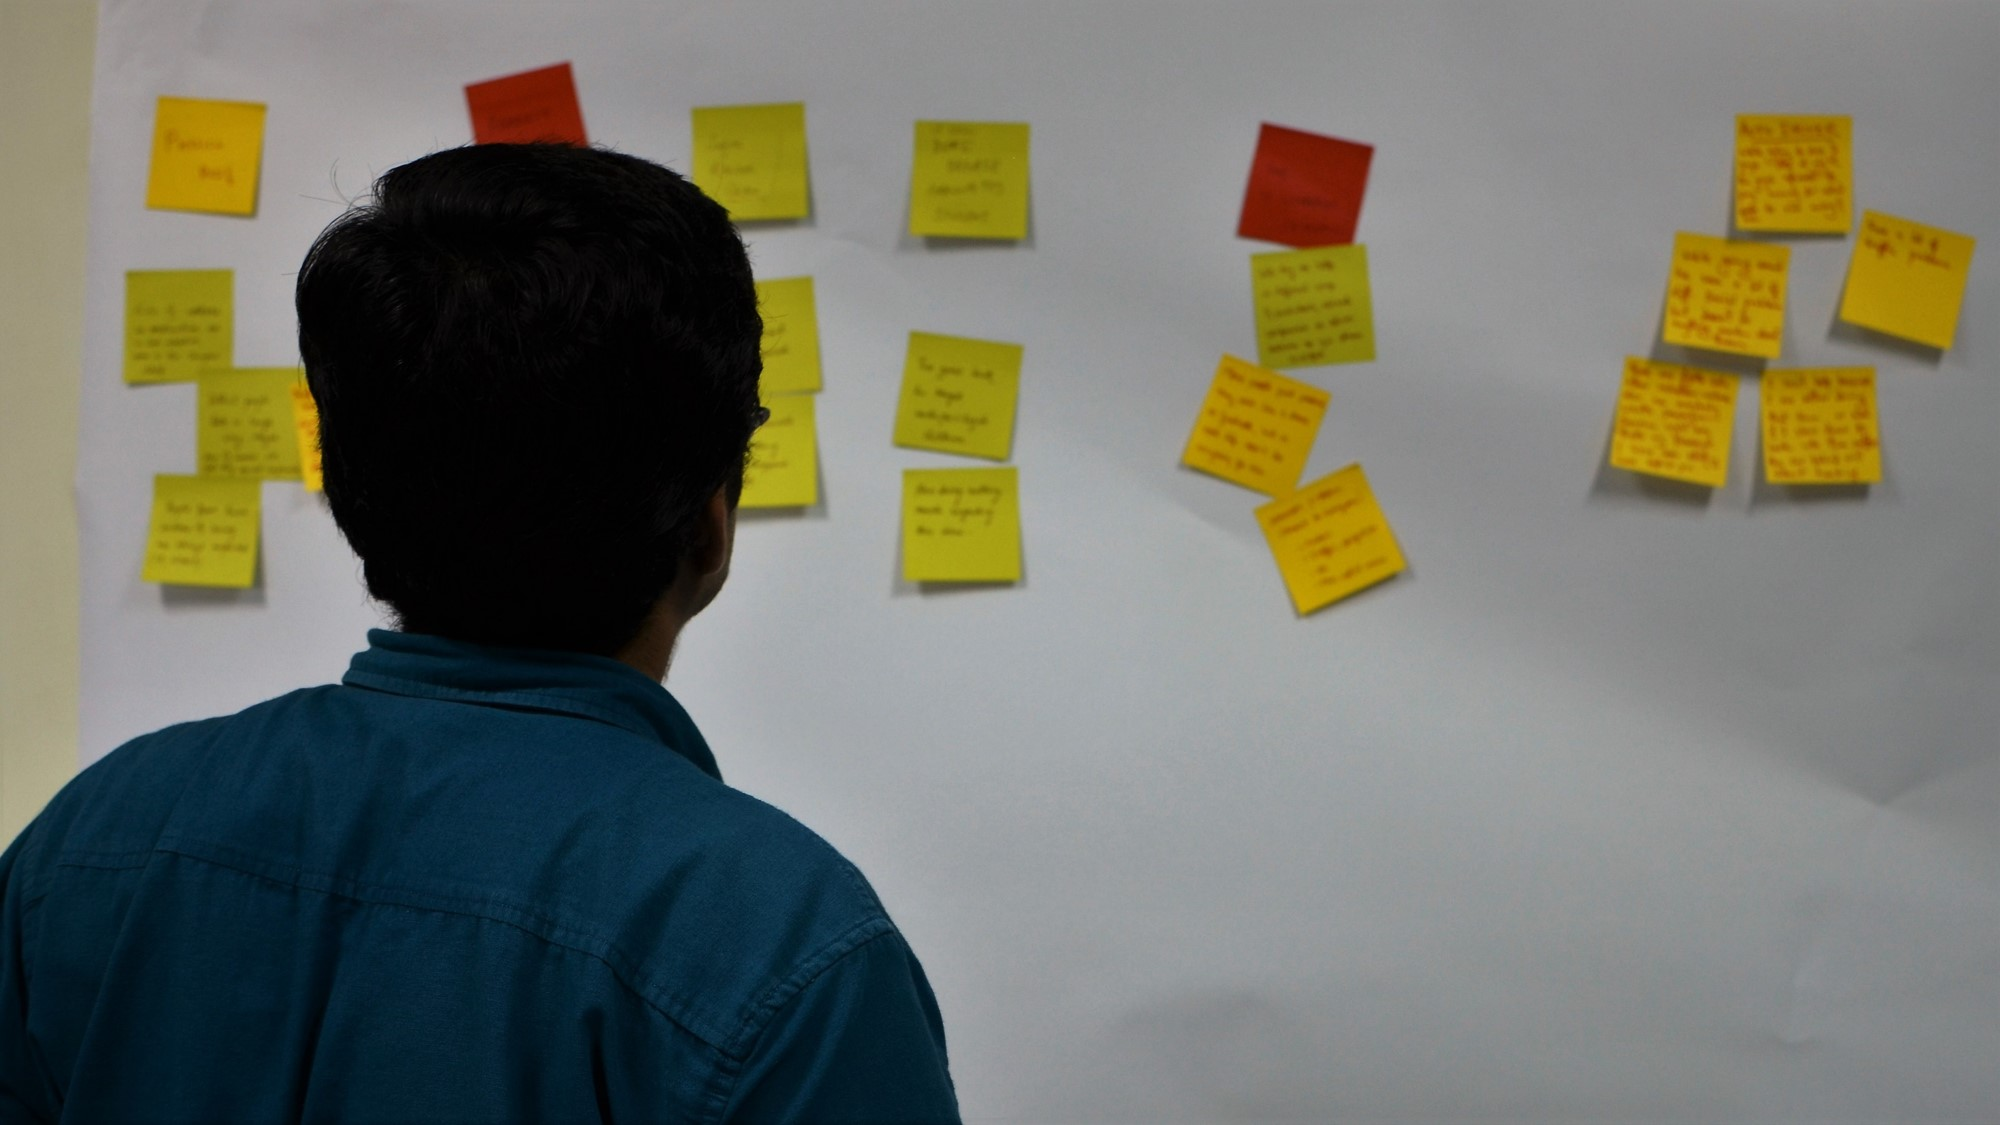 Workshops for changemakers. - Equipping leaders with the skills, tools, and mindsets for change.